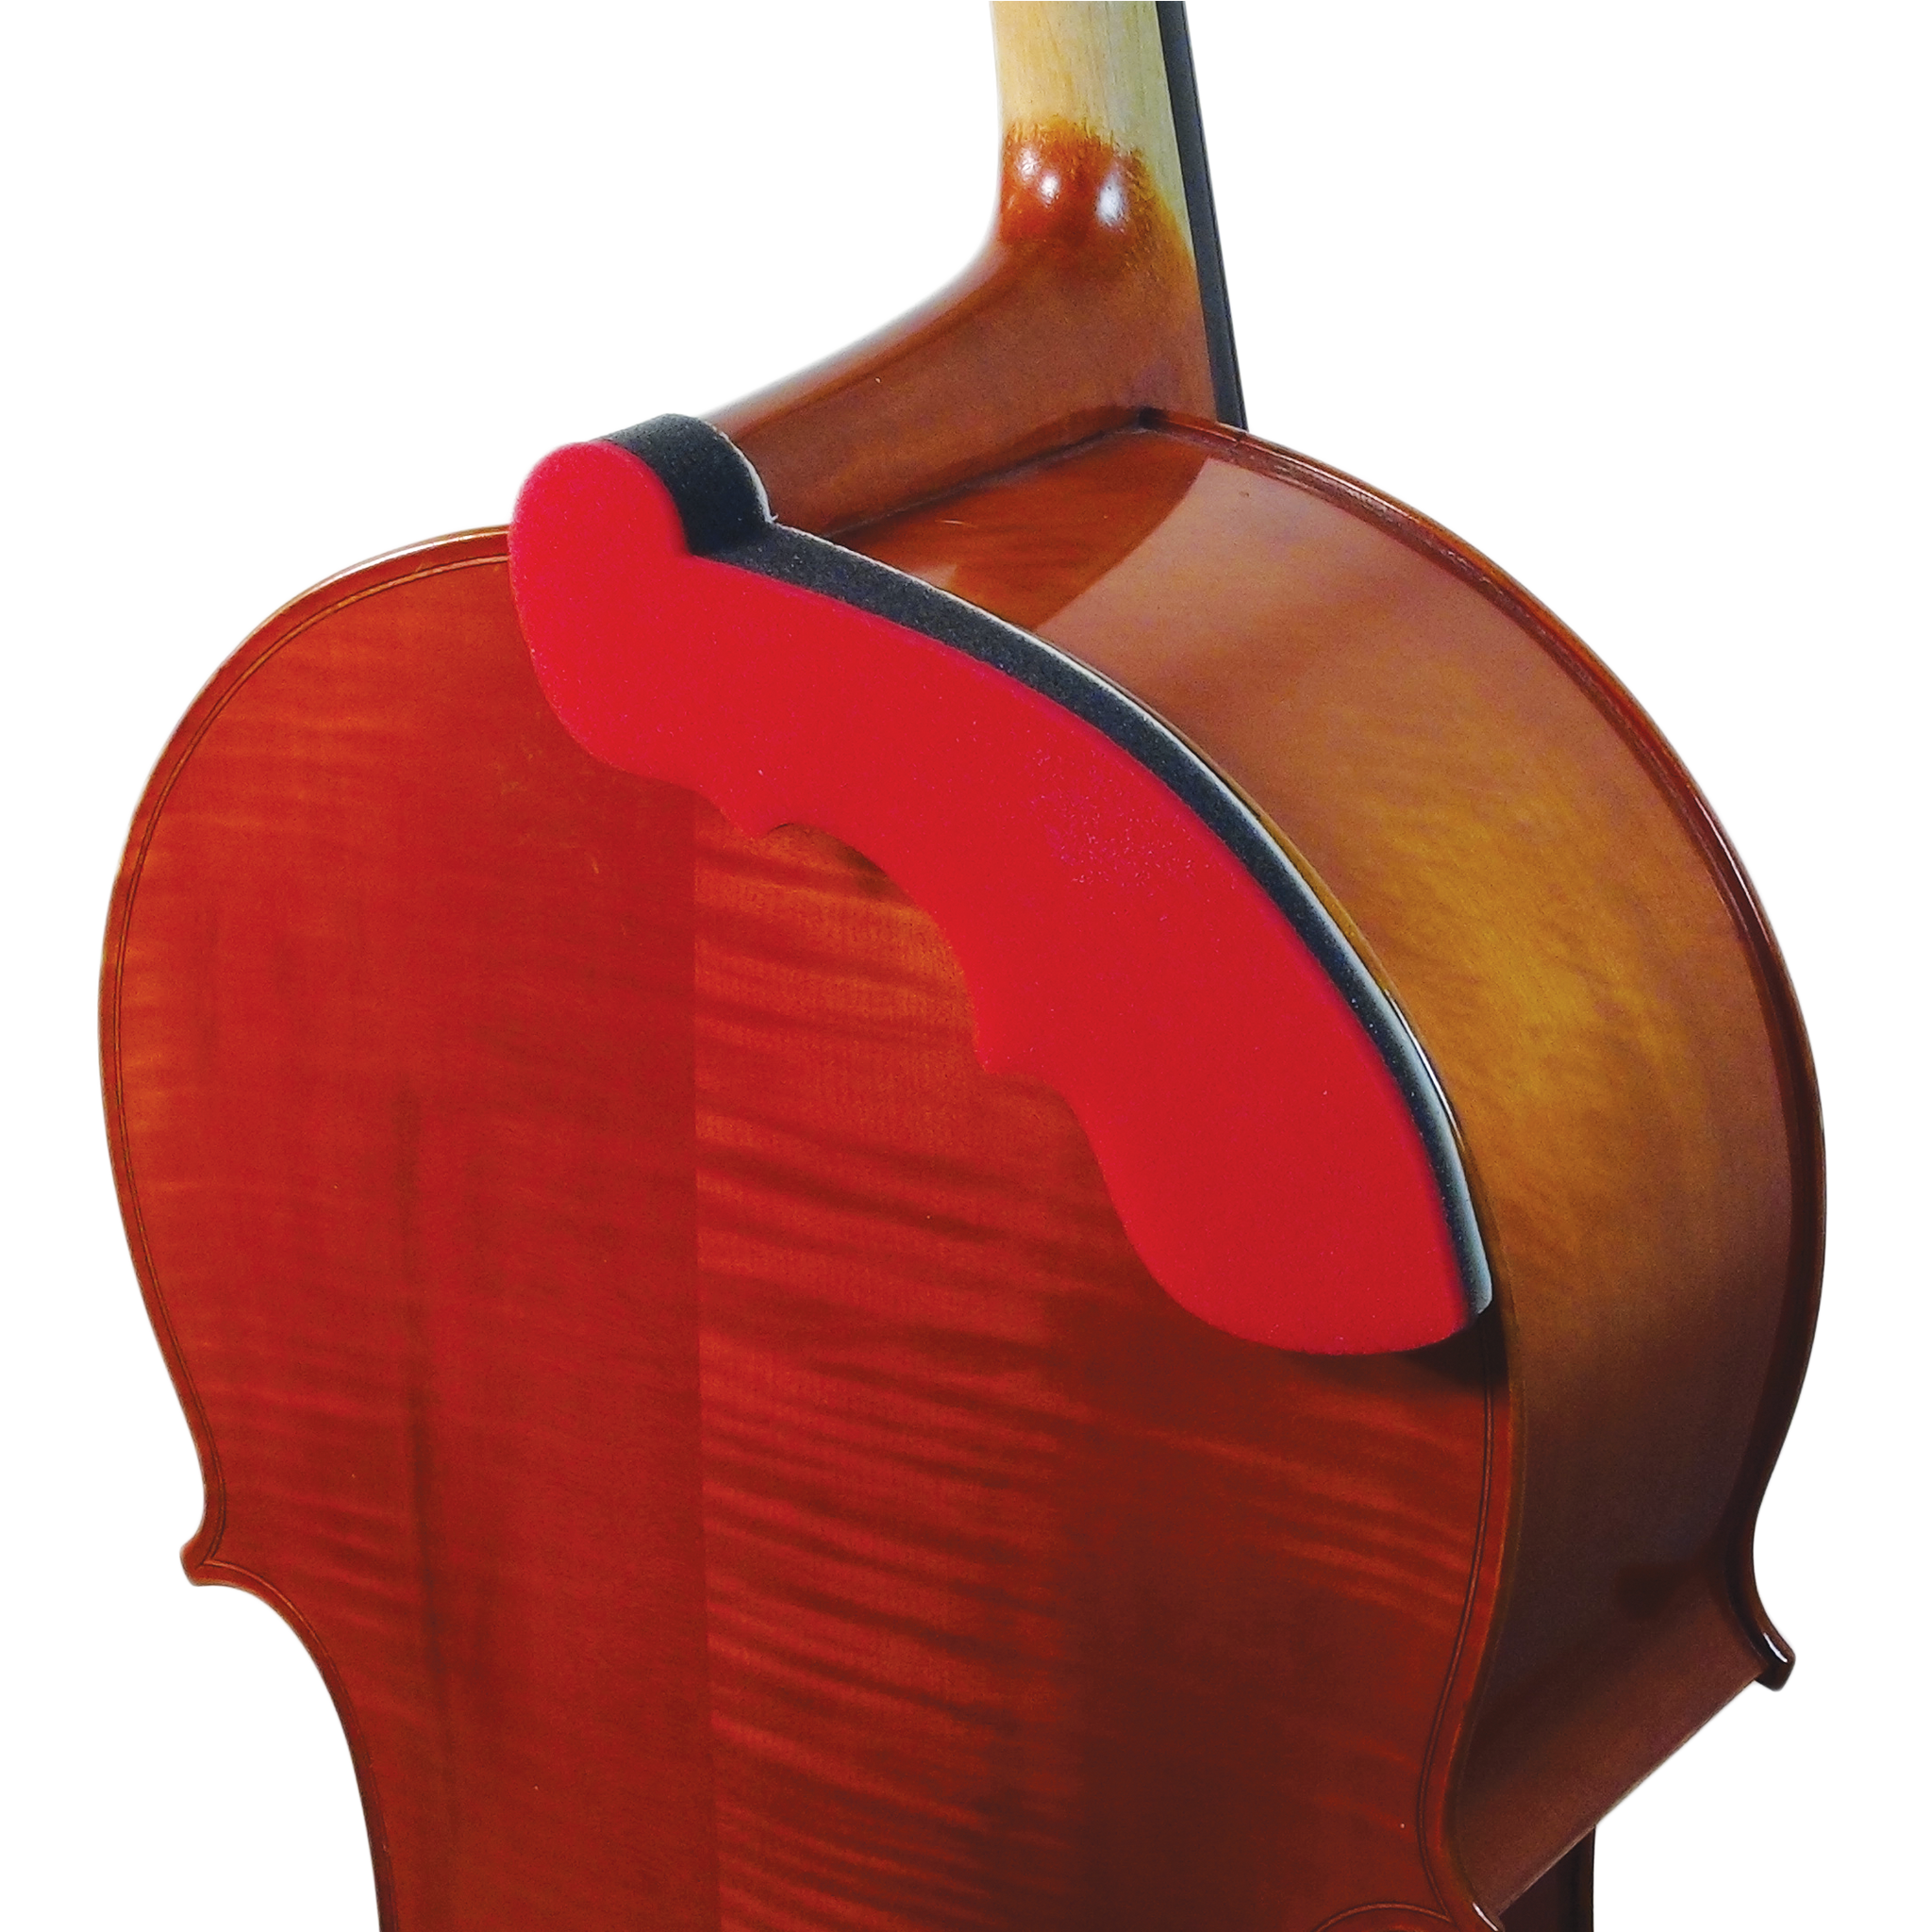 Solo Form Cellist Cello Chest Rest